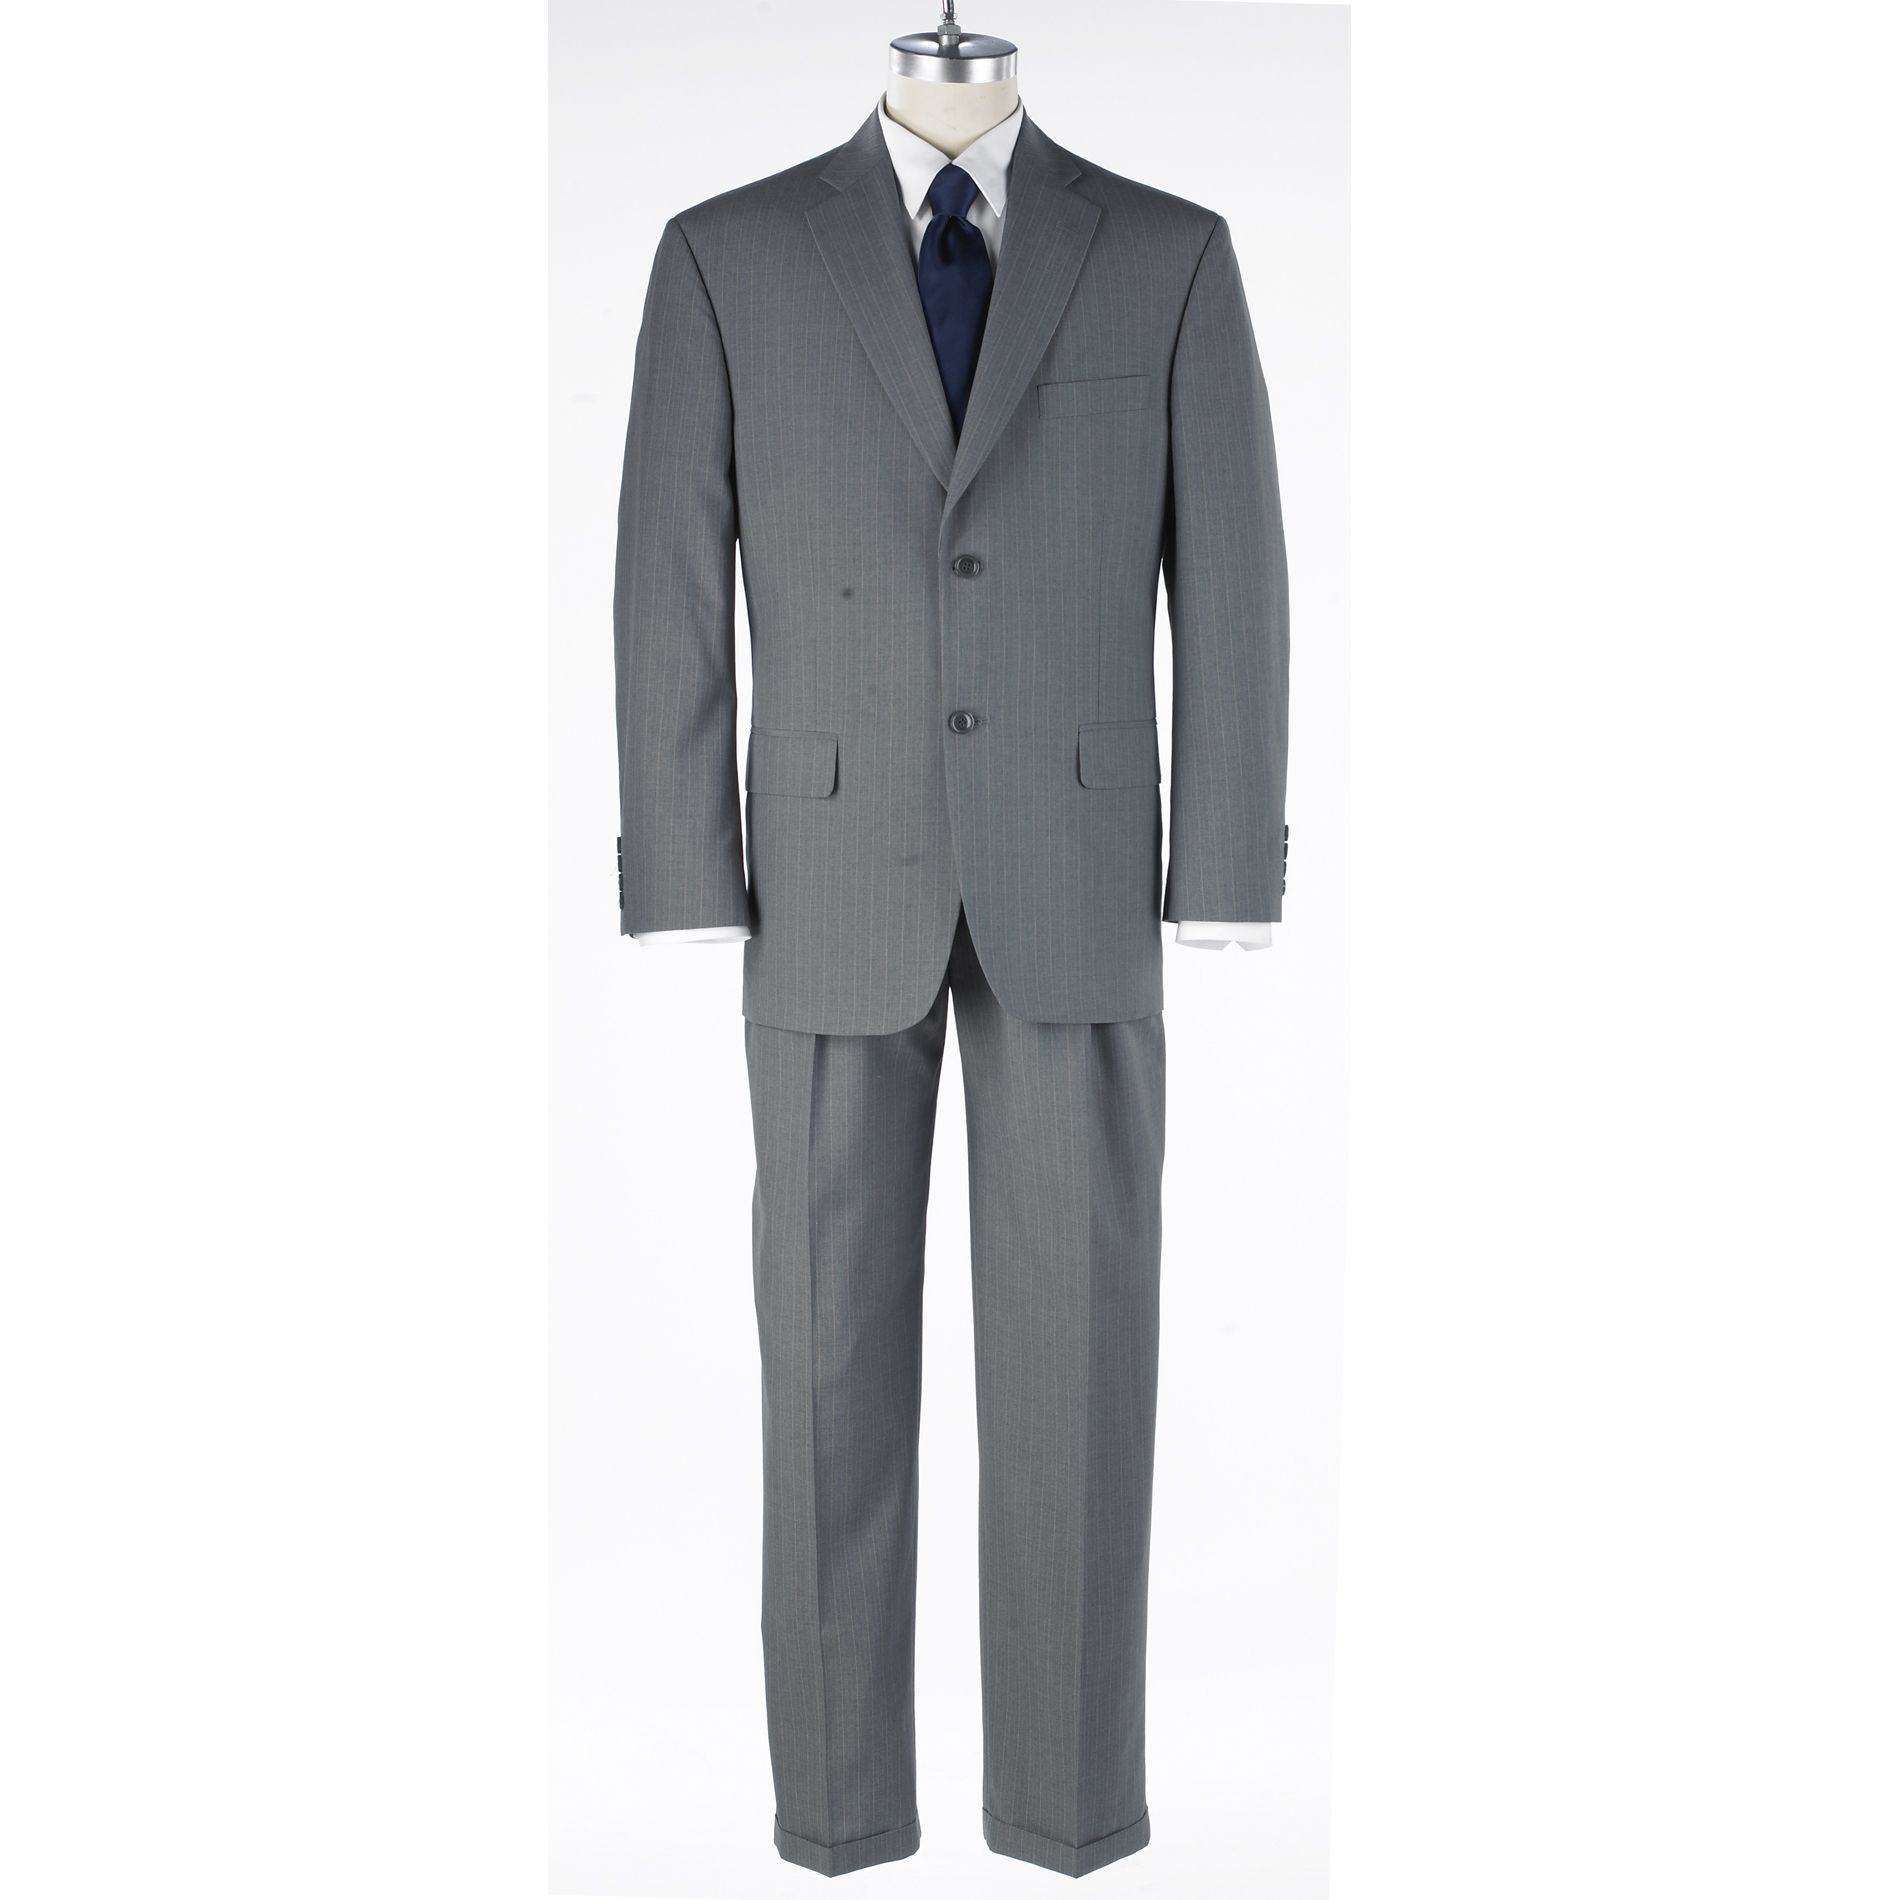 Haggar Suit Up System™ Clifton Suit Collection at Sears.com